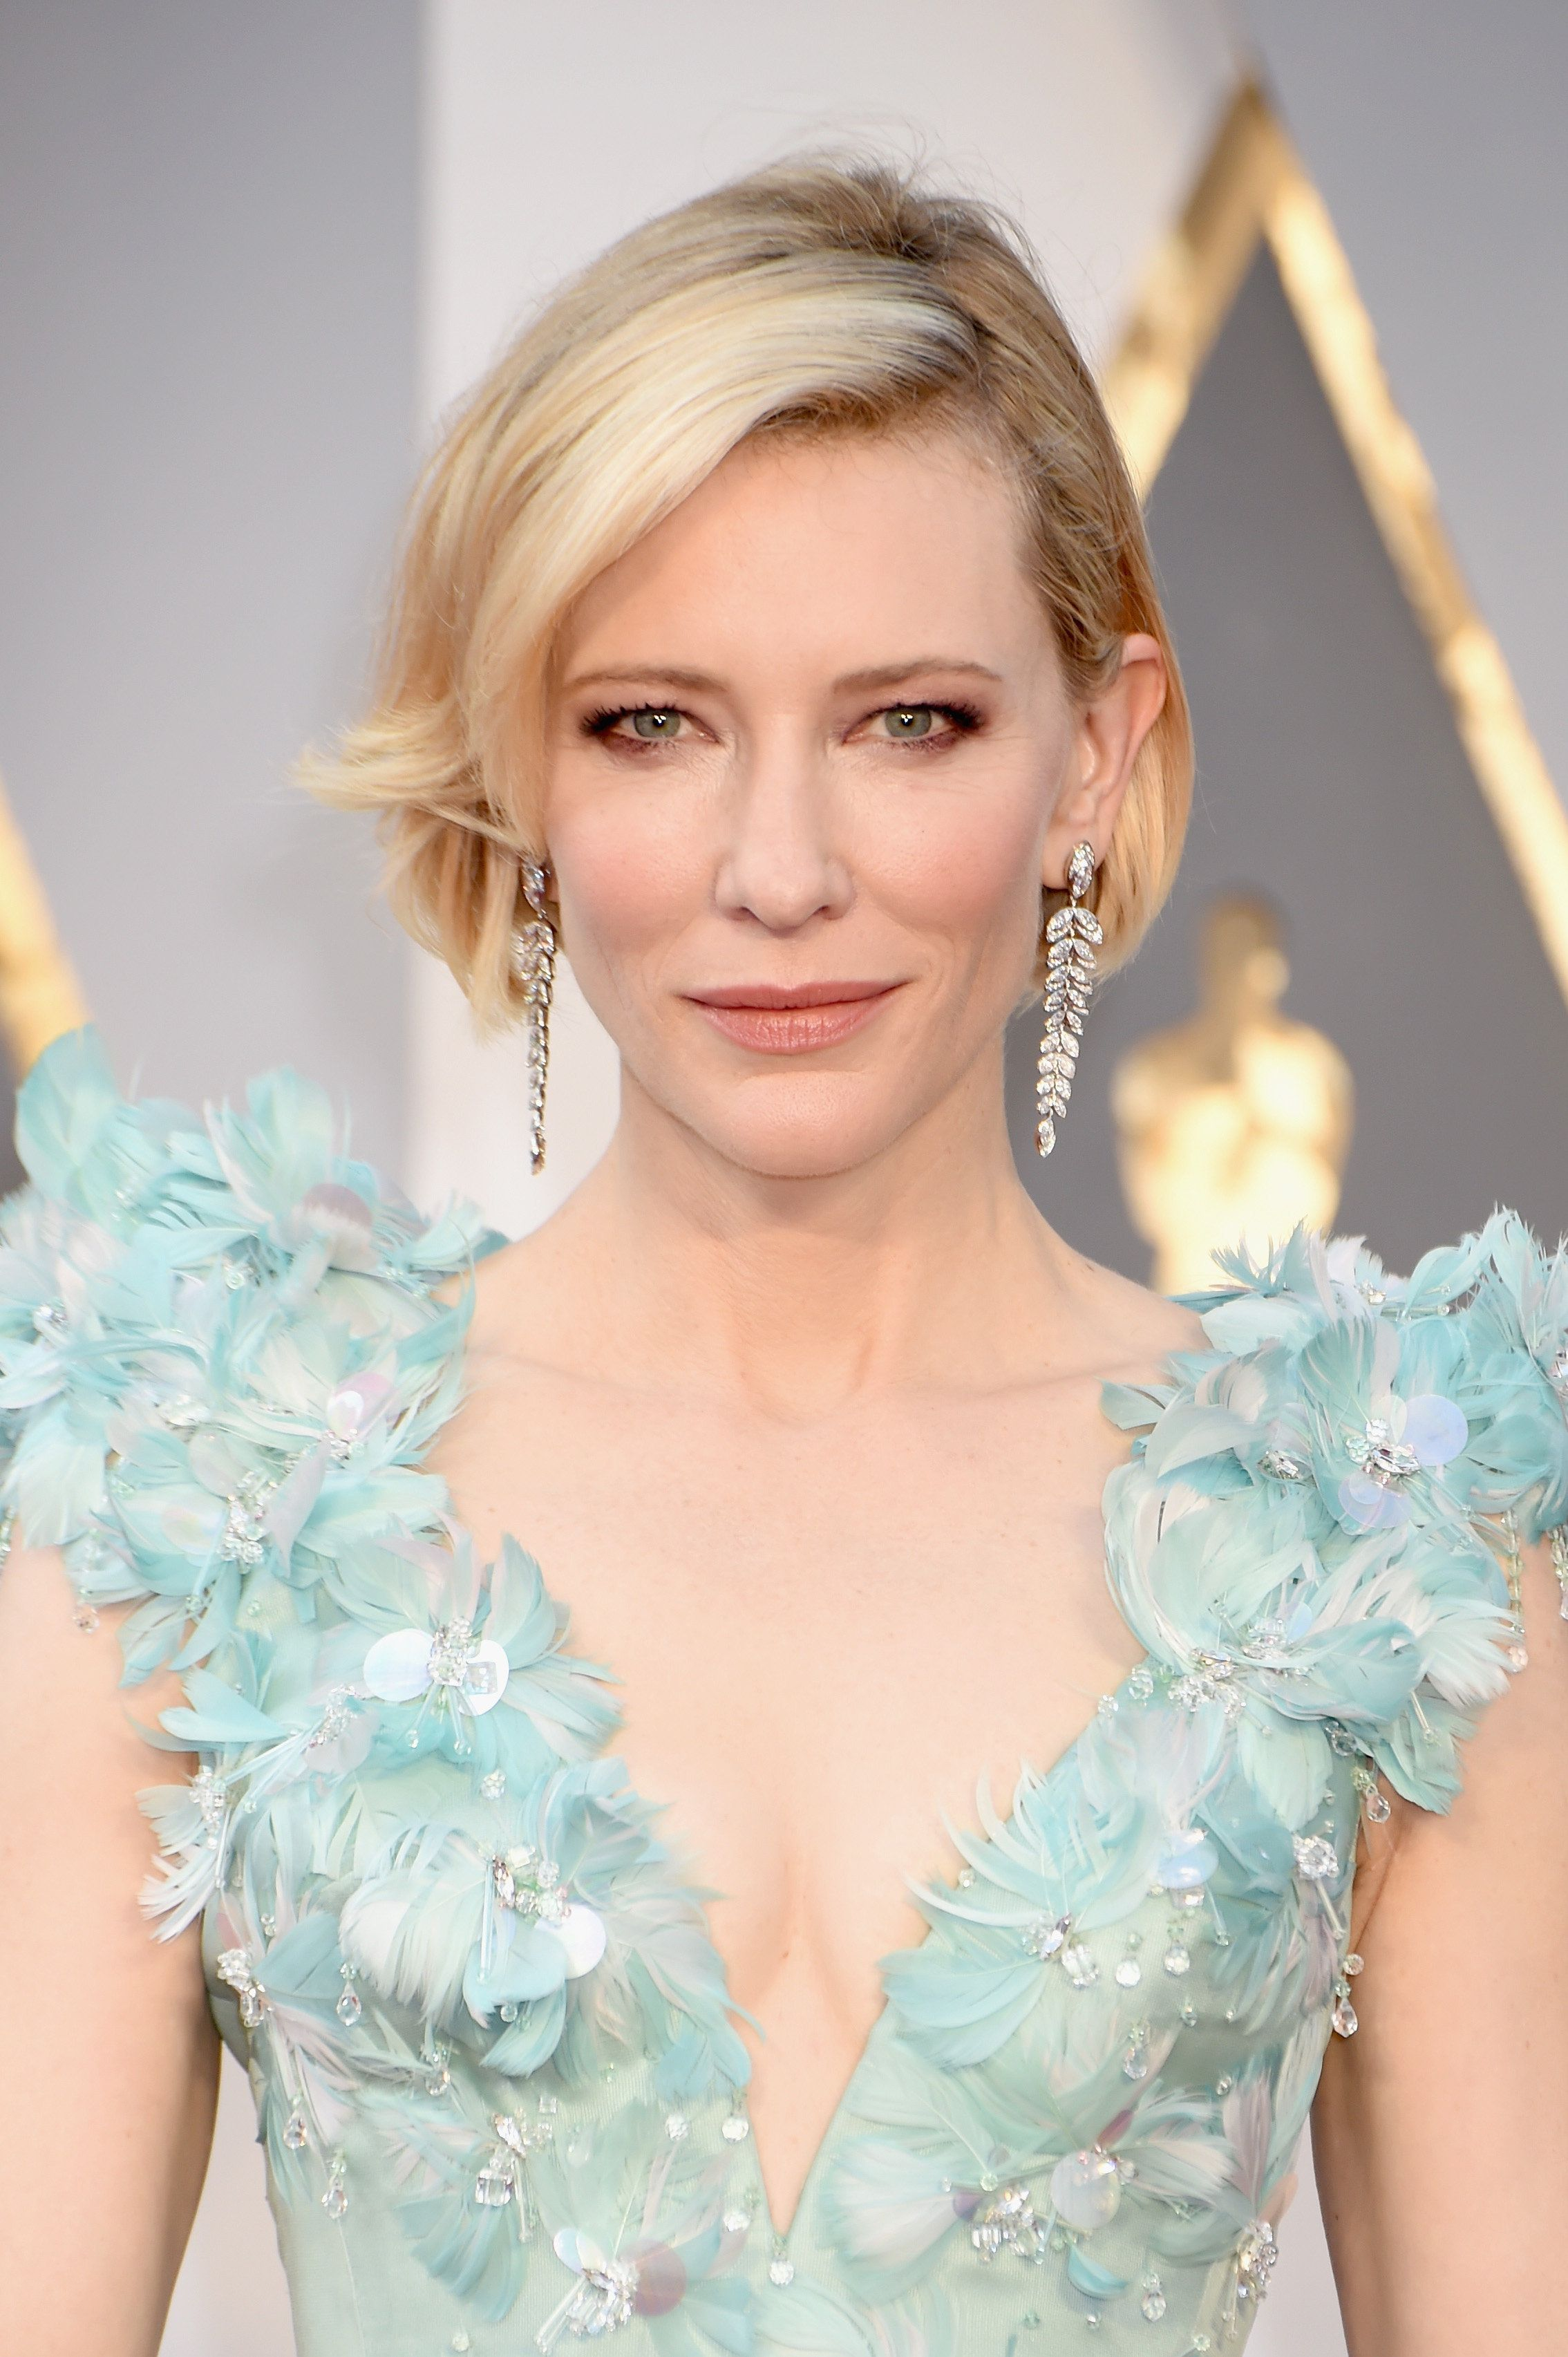 Cate Blanchett attends the 88th Annual Academy Awards.